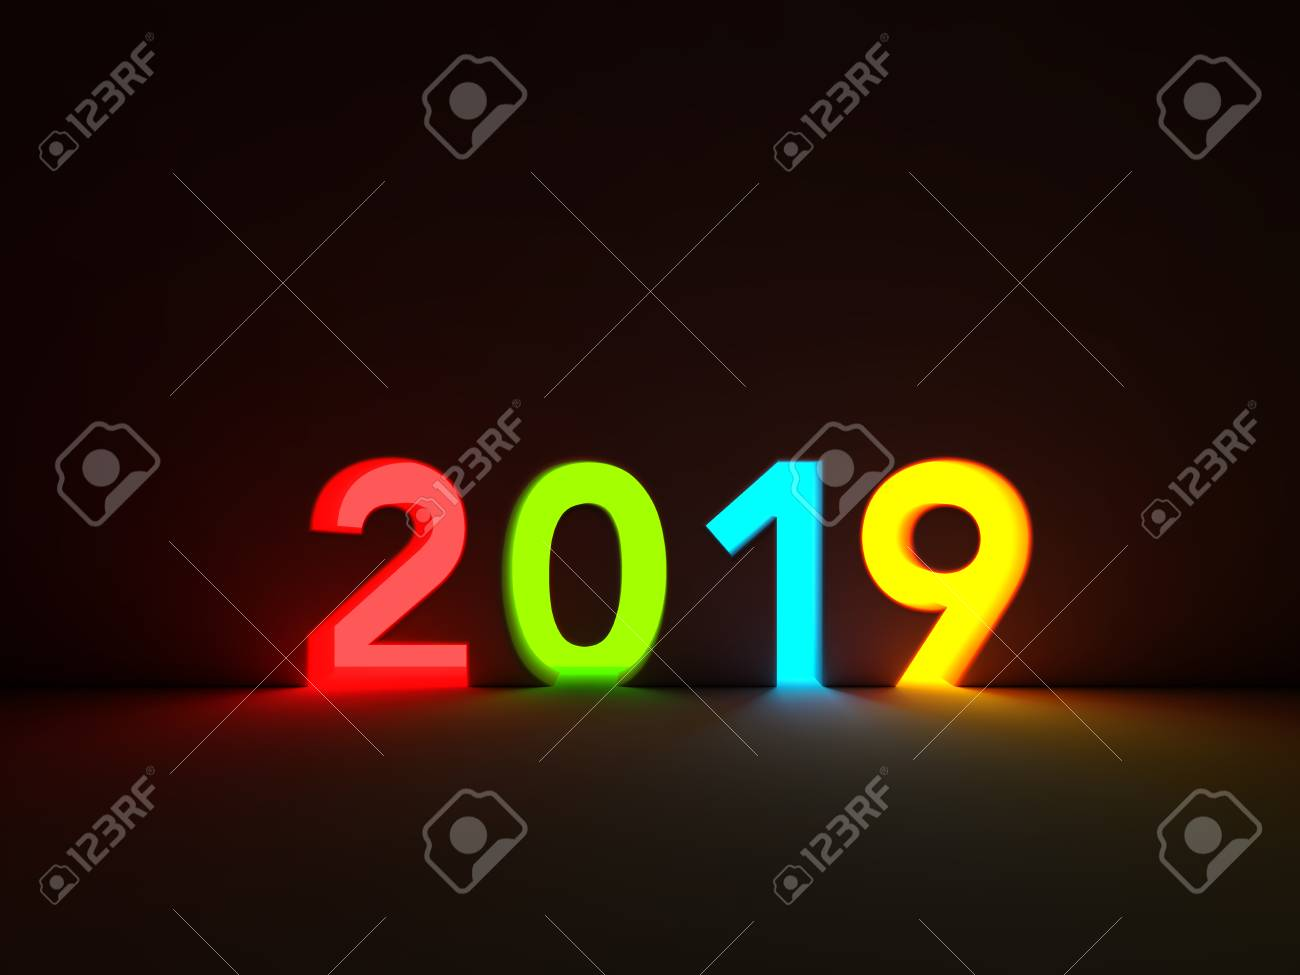 New Year 2019 Creative Design Concept with Lighting Effect -